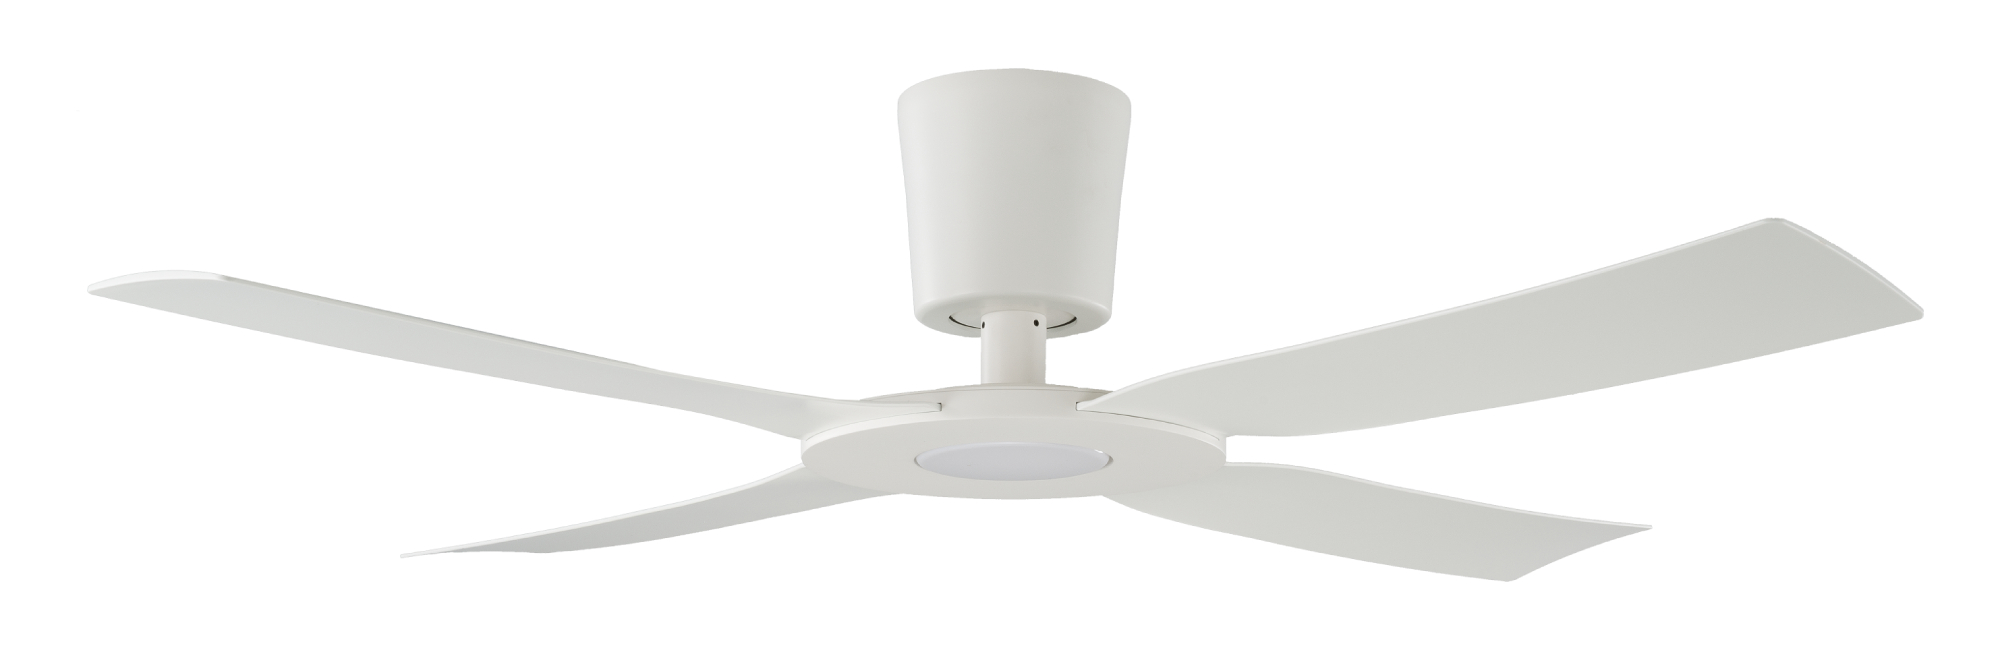 Milano Airborne White with dimmable LED Light